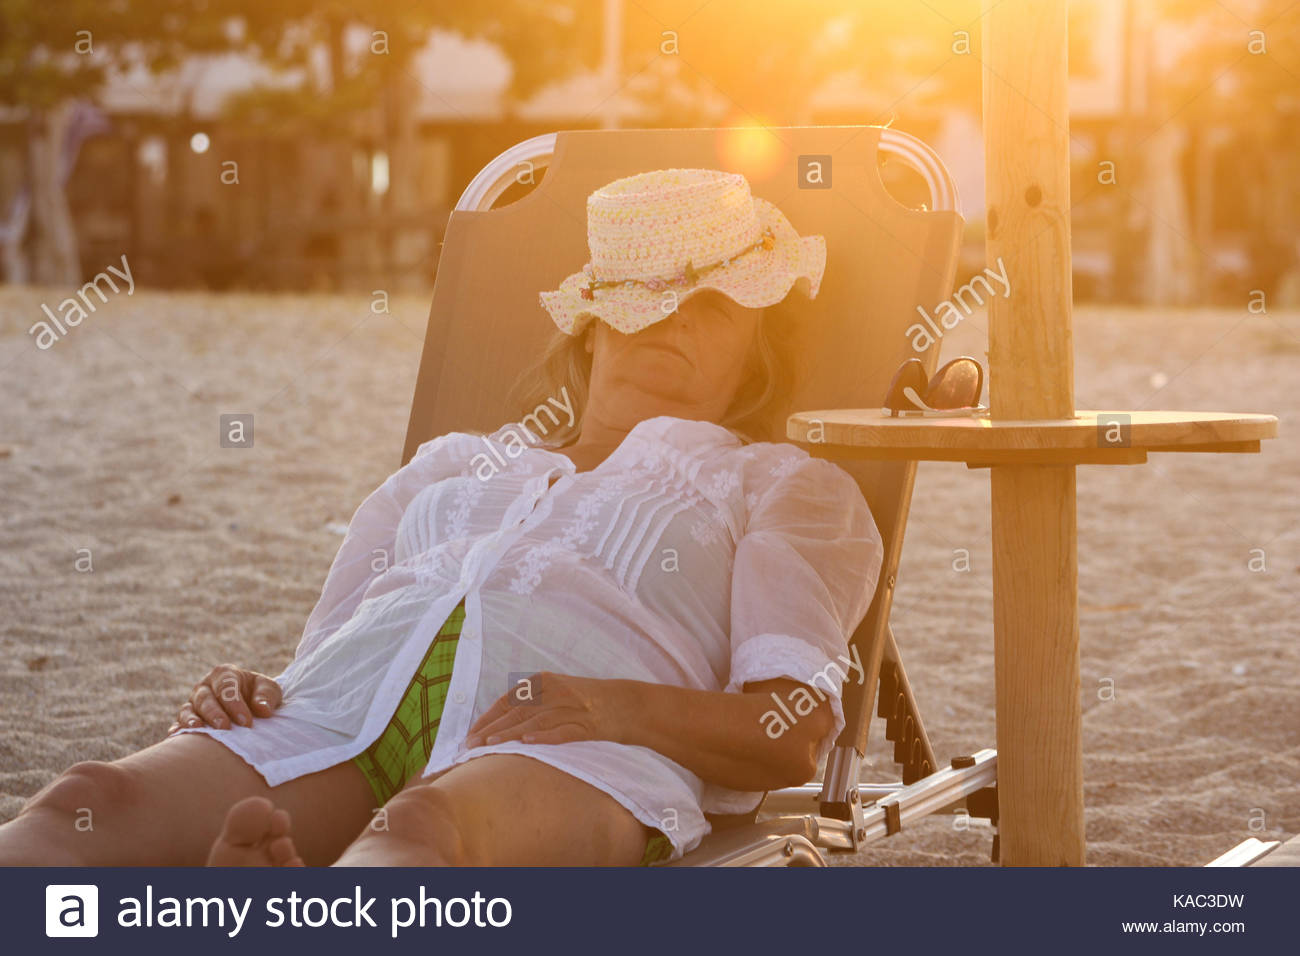 Woman Laying on the Sunbed and Sleeping on the Beach - Stock Image